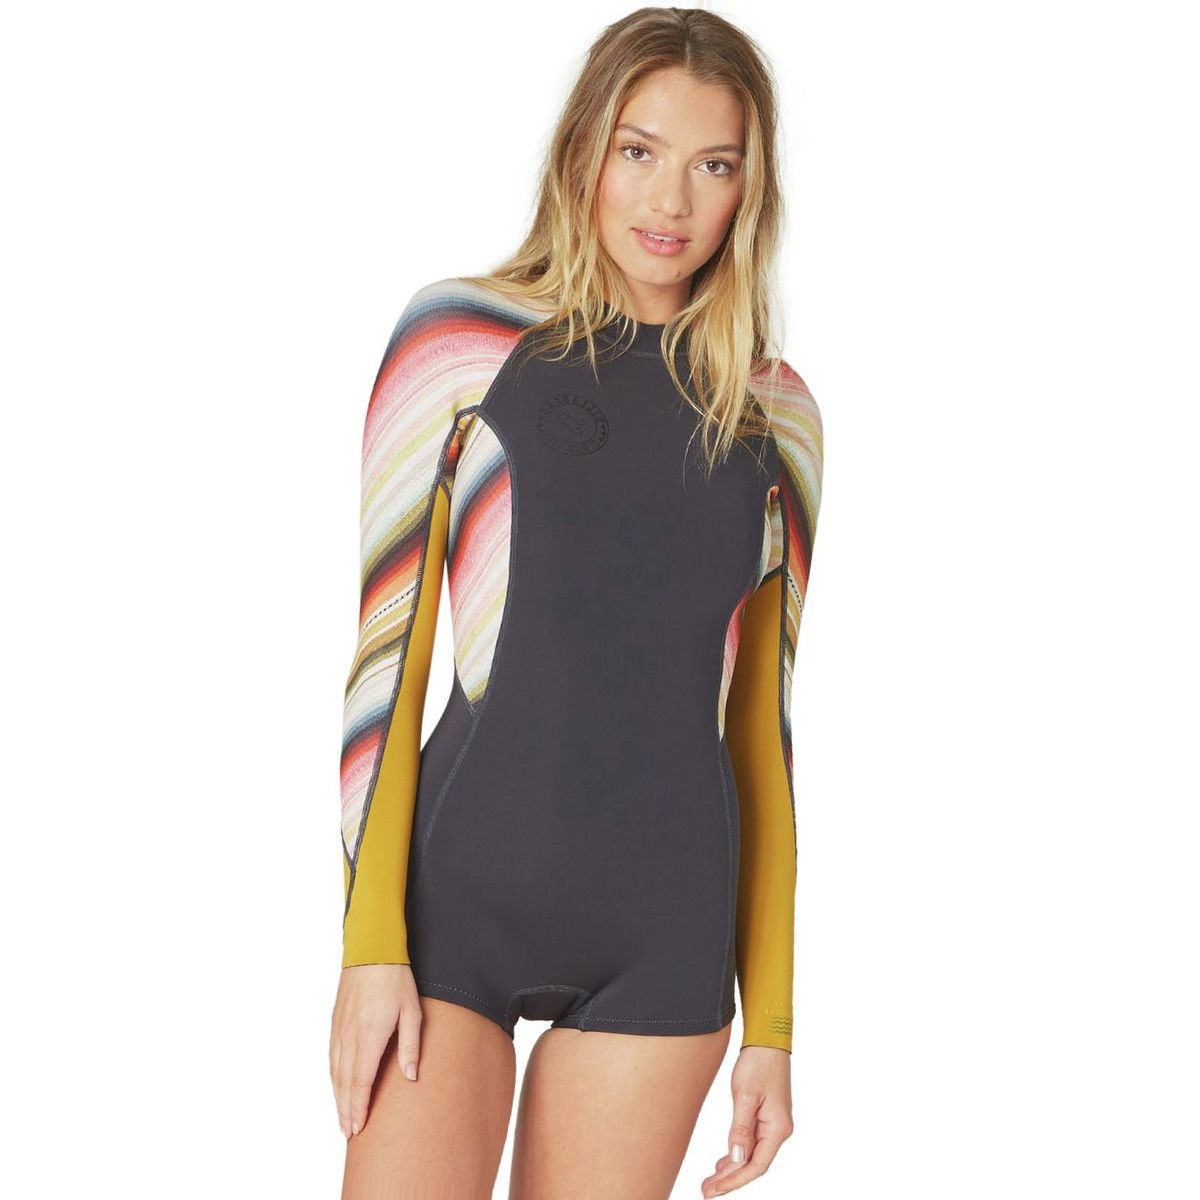 Billabong Spring Fever Long-Sleeve Springsuit - Women's